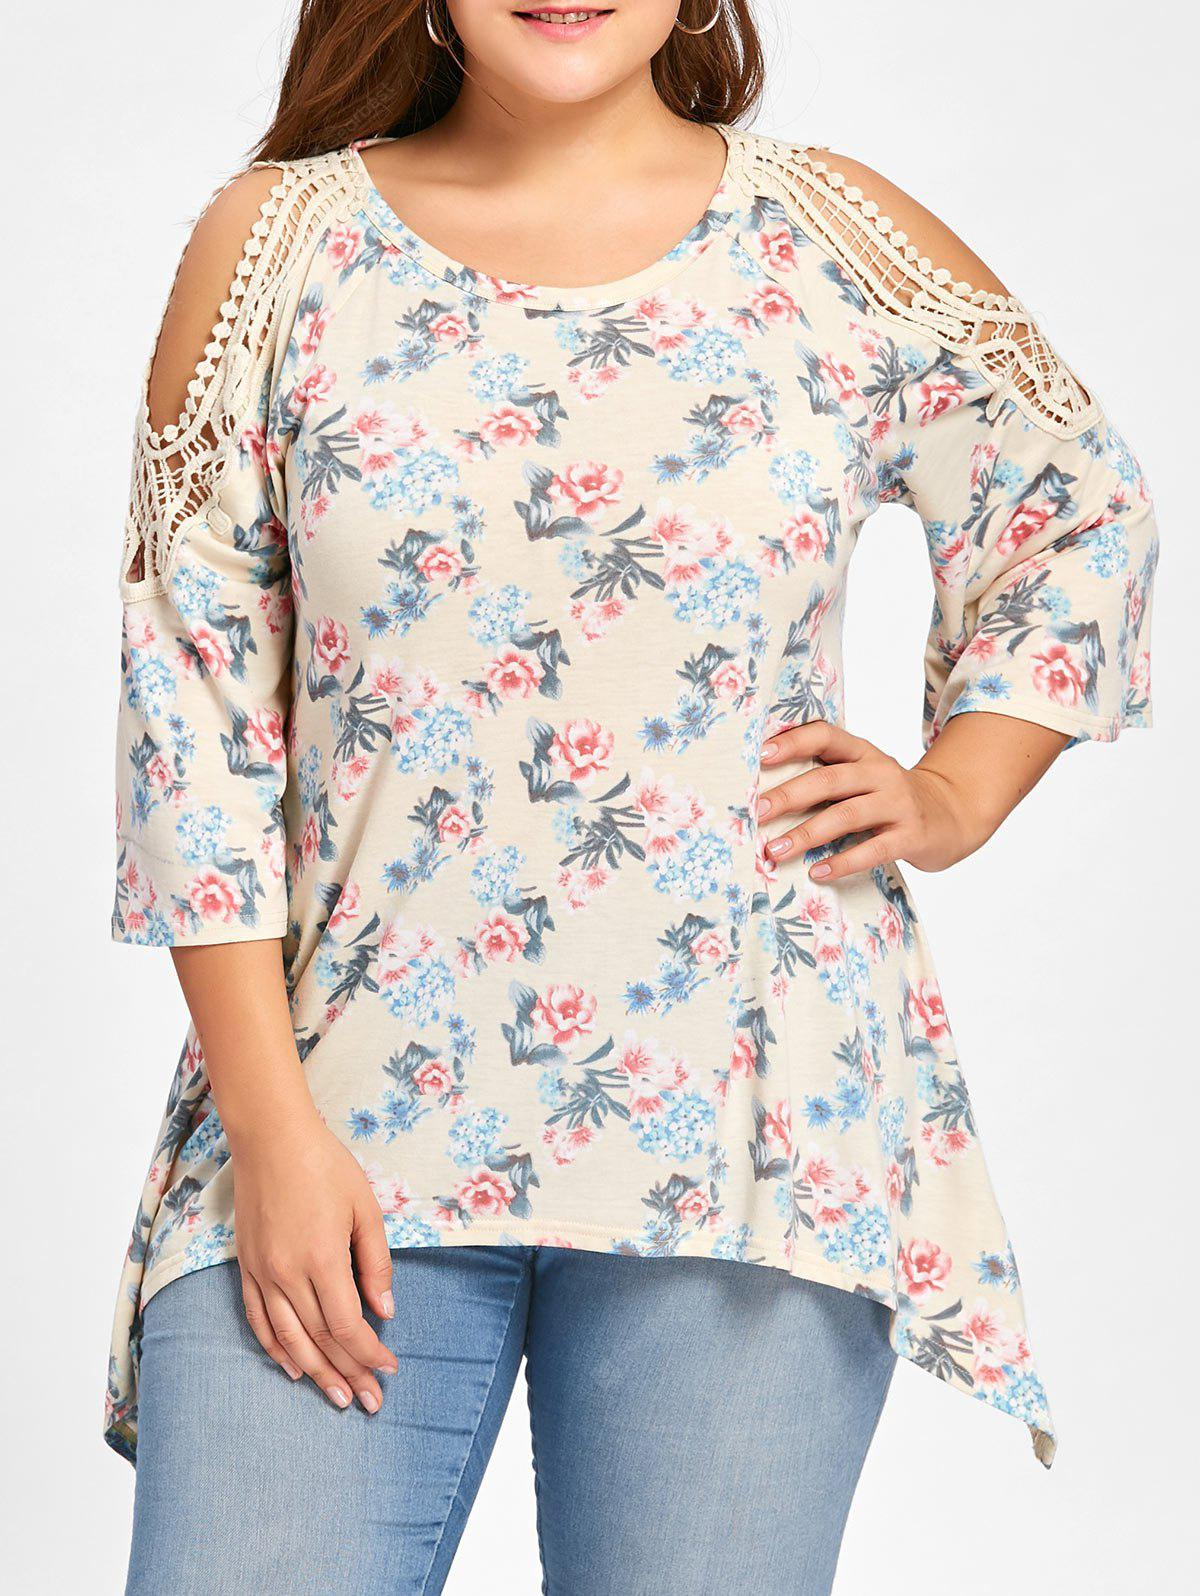 Top Size Shoulder Tiny Floral Cold Size